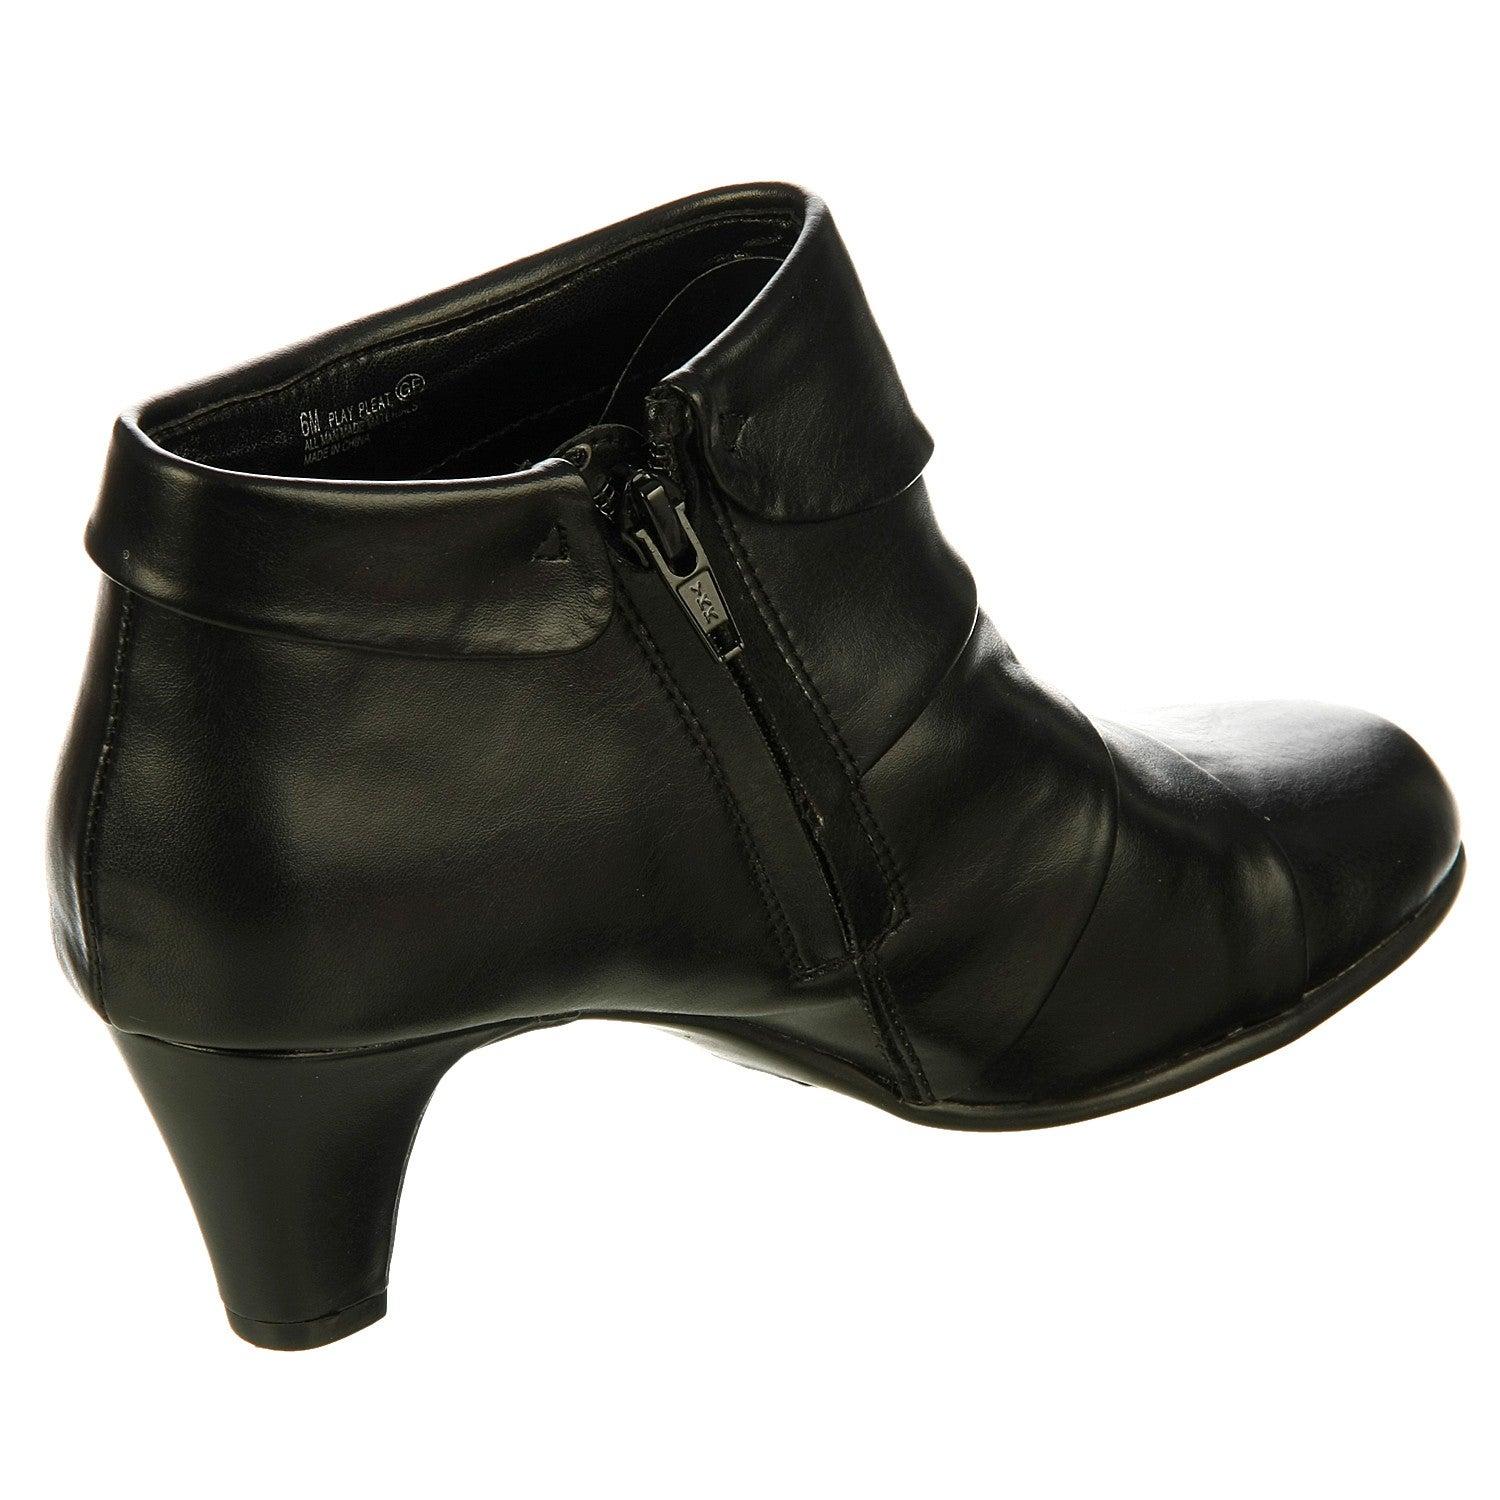 2647104f52b Shop Aerosoles Women s  Play Pleat  Black Pleated Booties - Free Shipping  On Orders Over  45 - Overstock - 6220760